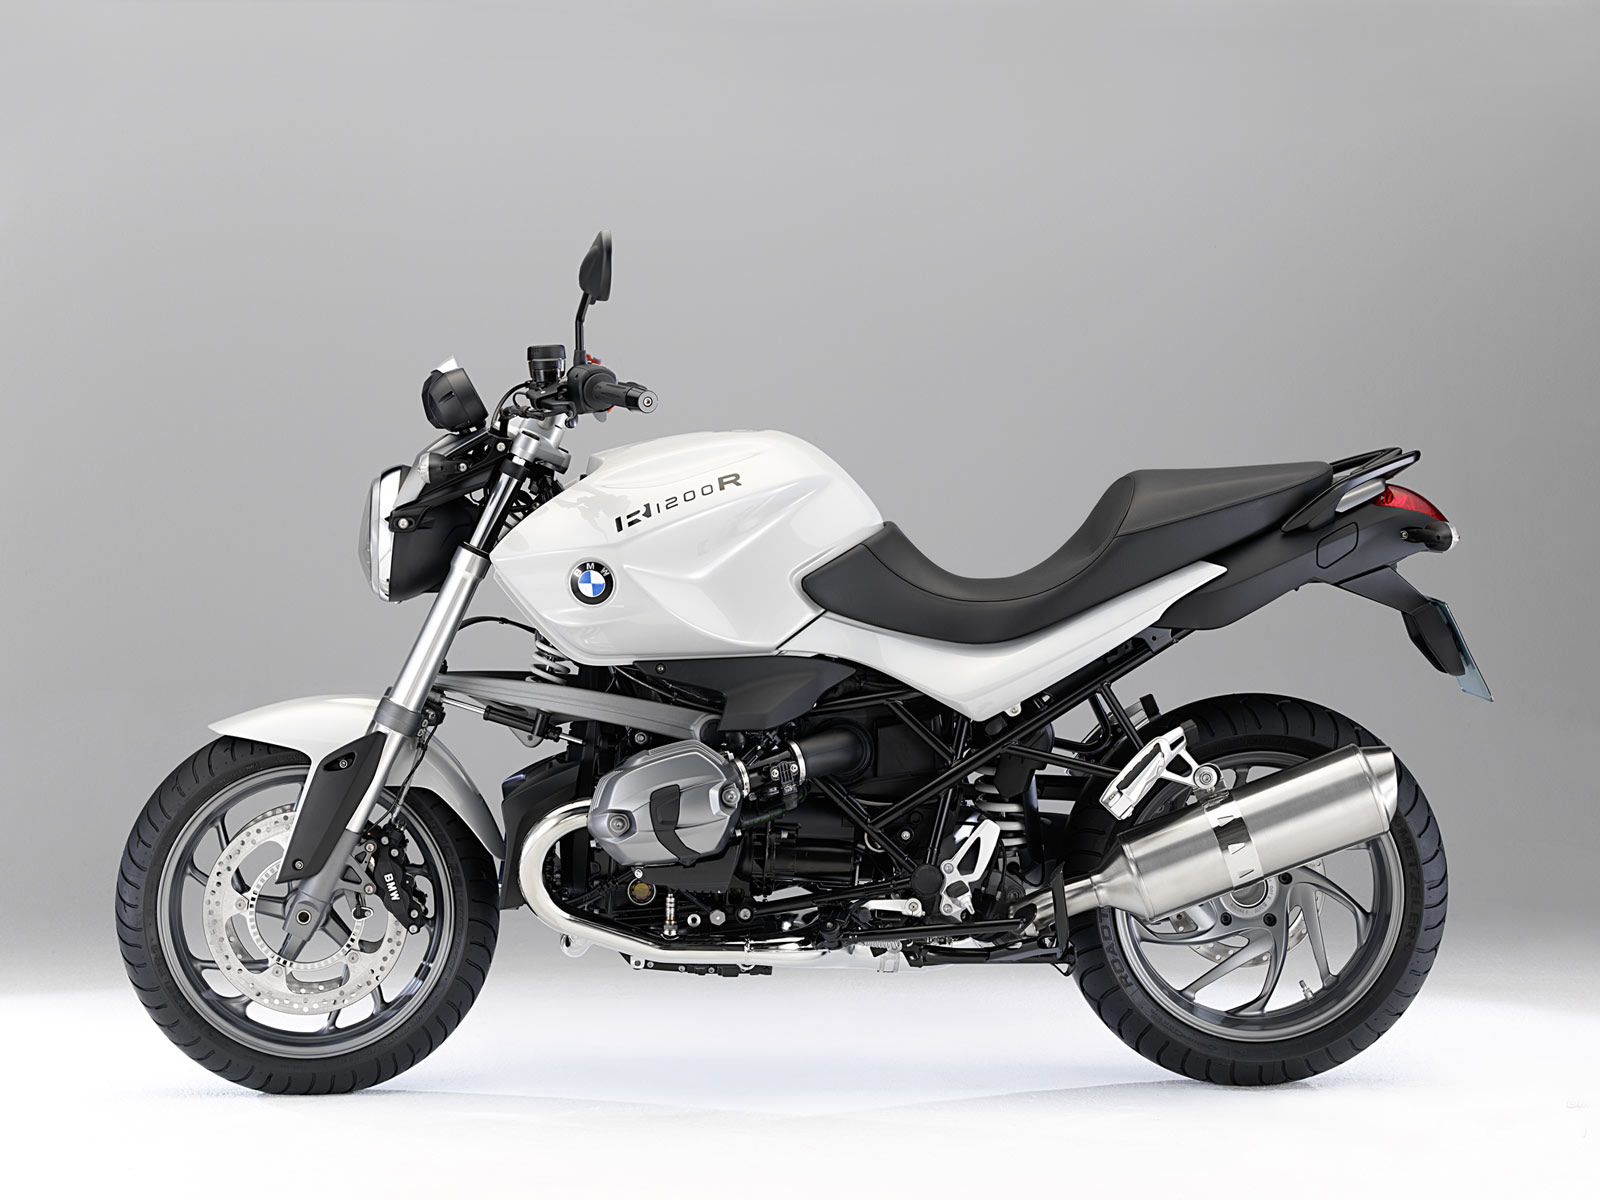 2011 BMW R1200R motorcycle pictures Accident lawyers info